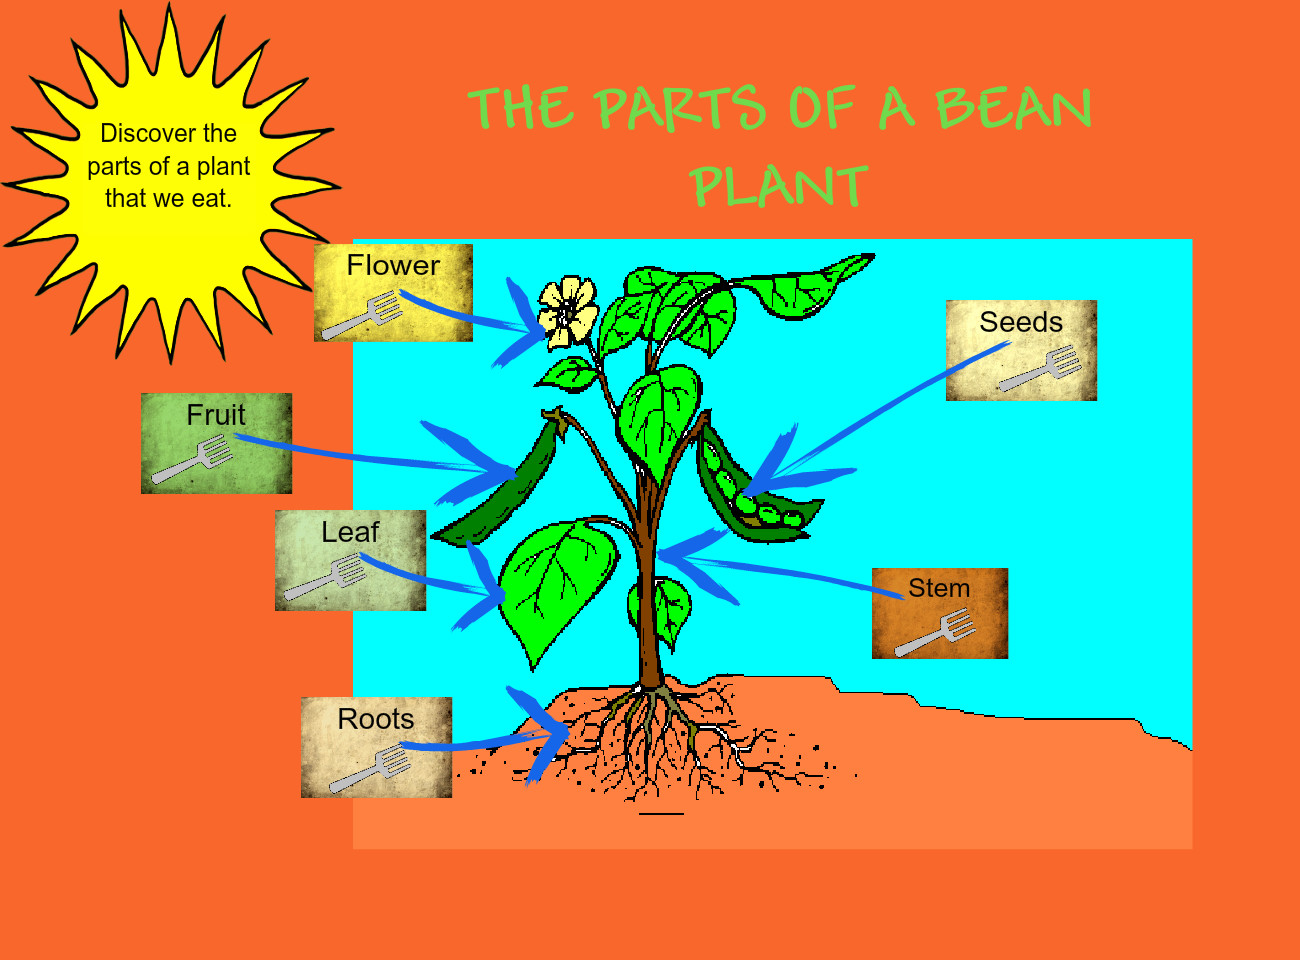 Parts Of Plants We Eat Text Images Music Video